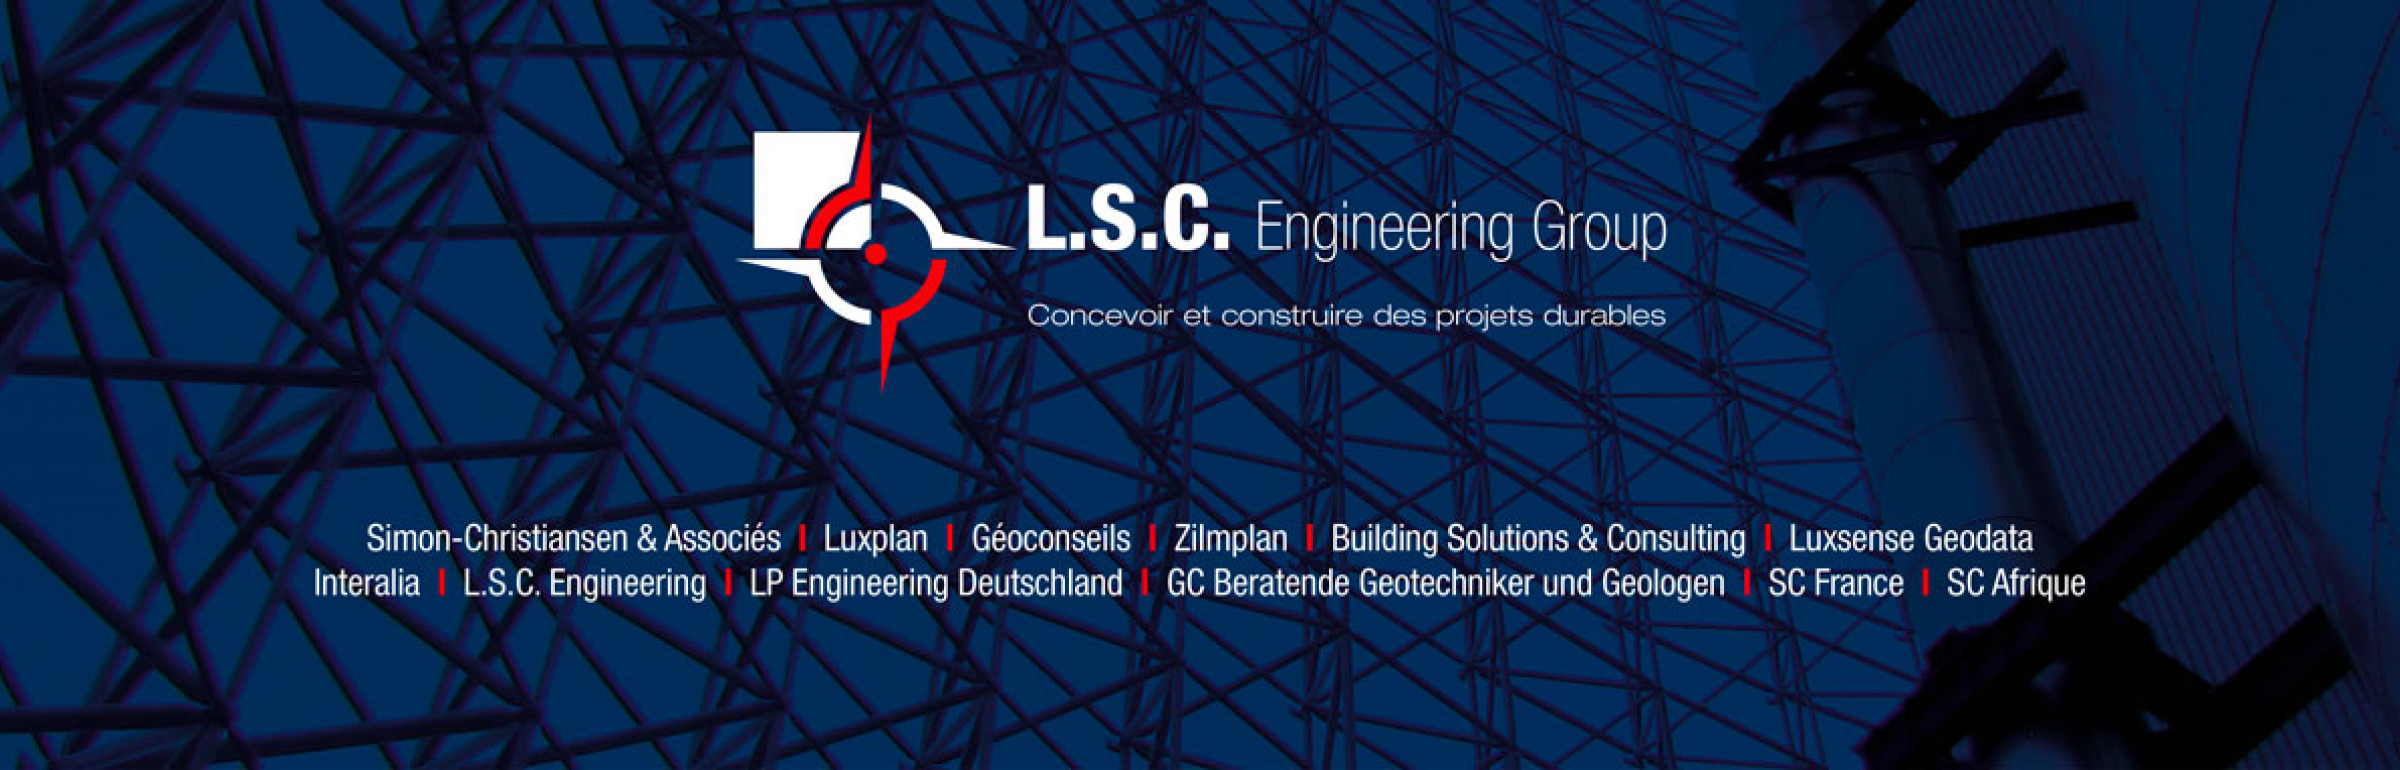 Banner L.S.C. Engineering Group S.A.